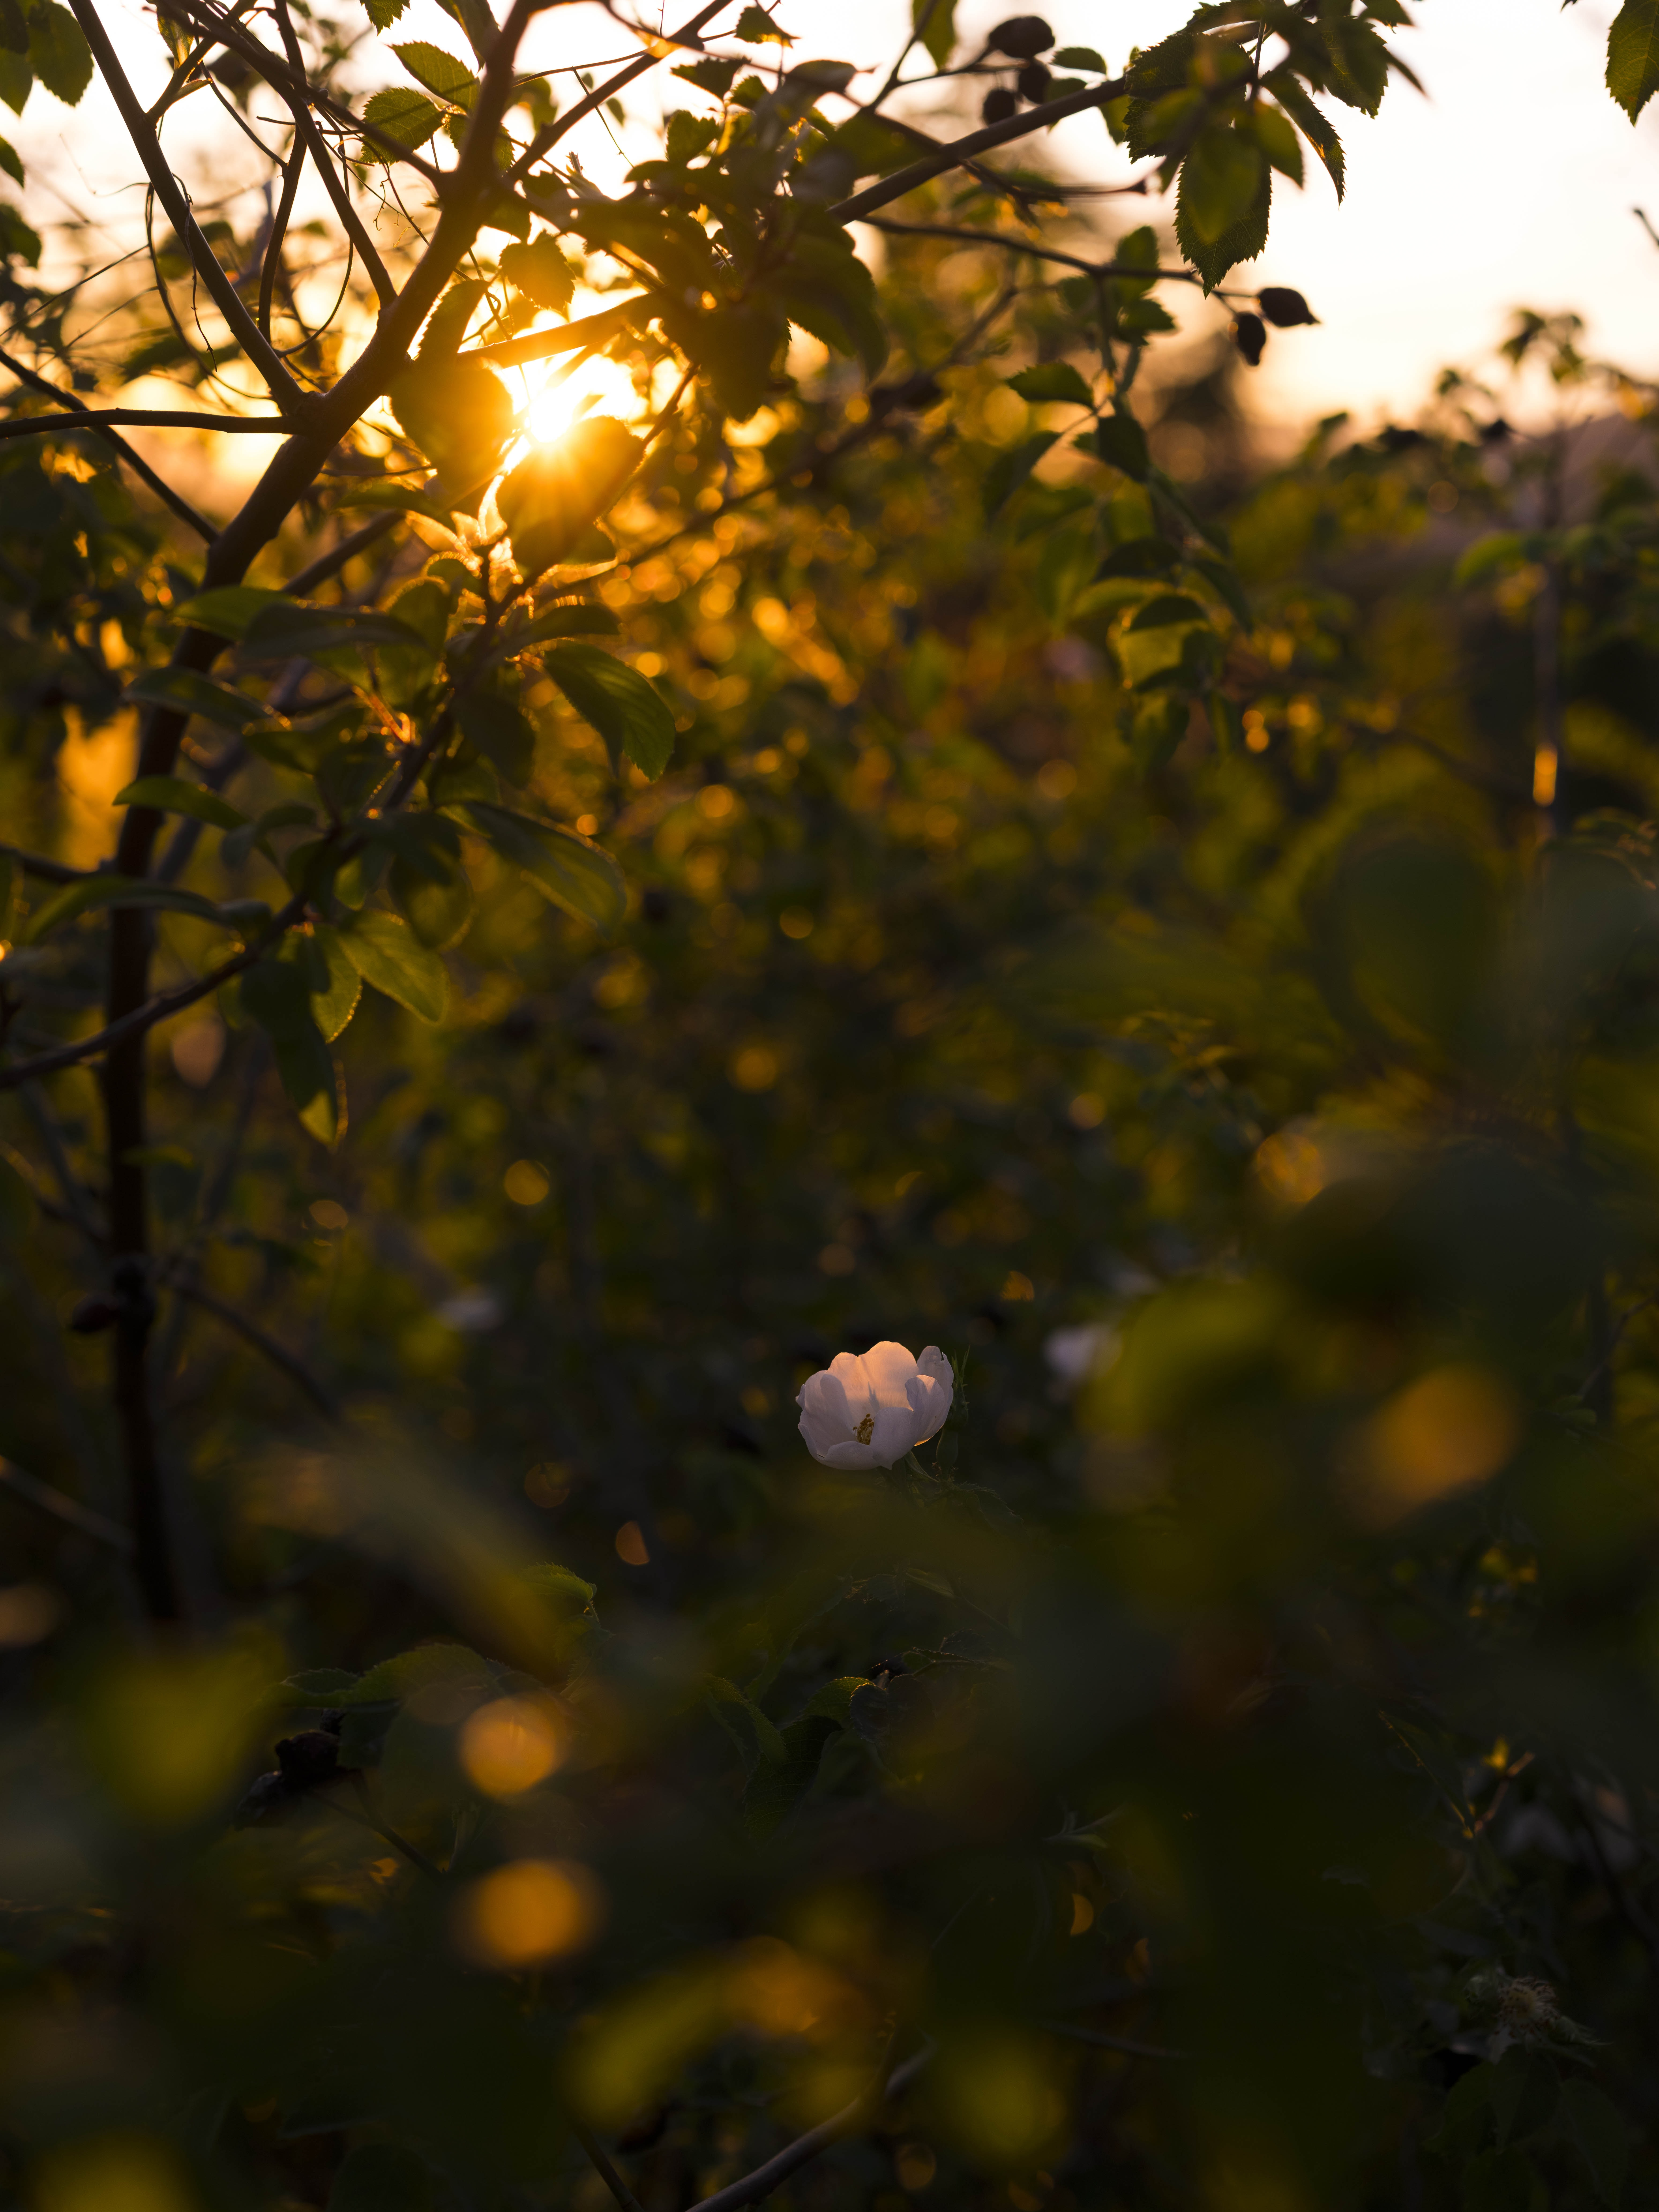 A white flower in a green thicket during sunset